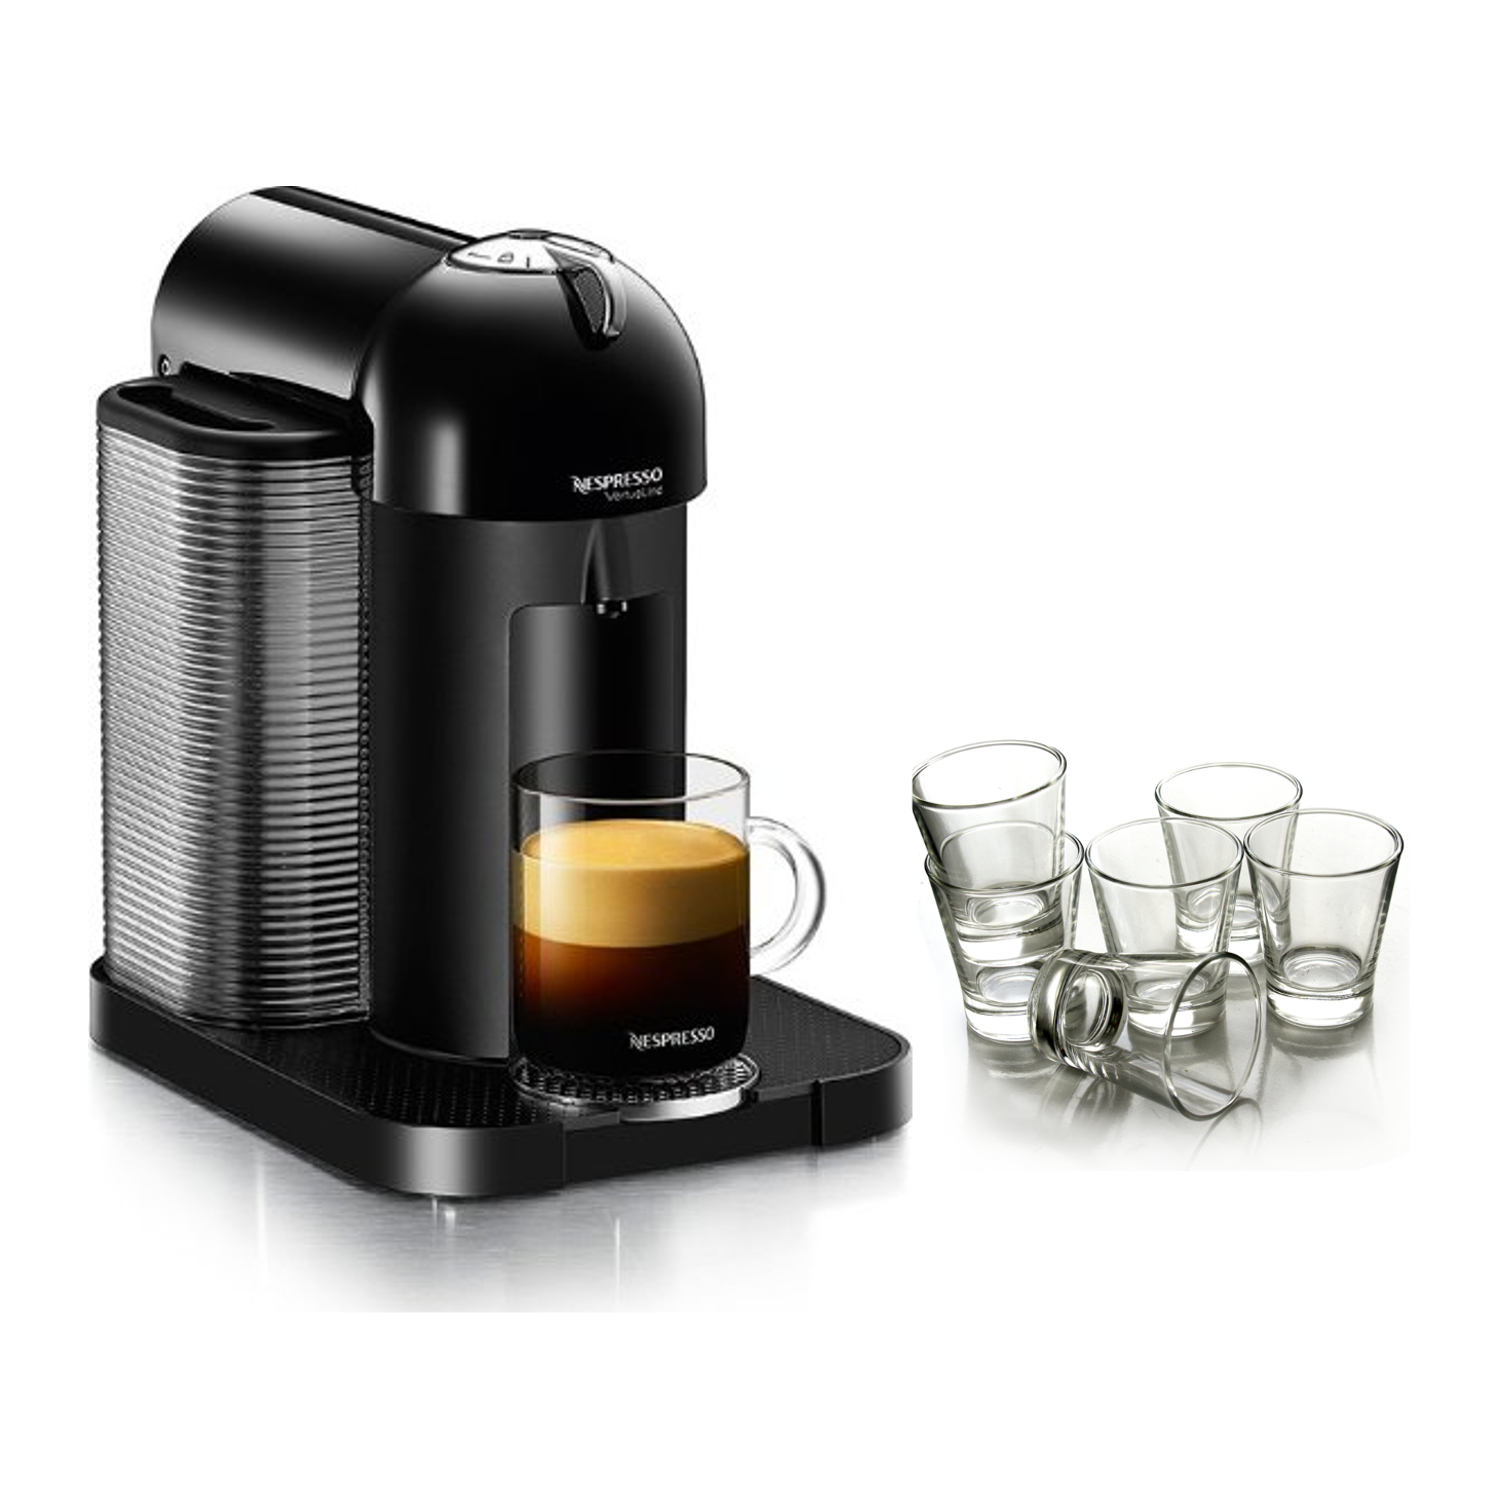 Nespresso VertuoLine Black Coffee and Espresso Maker with Free Set of 6 Espresso Glasses